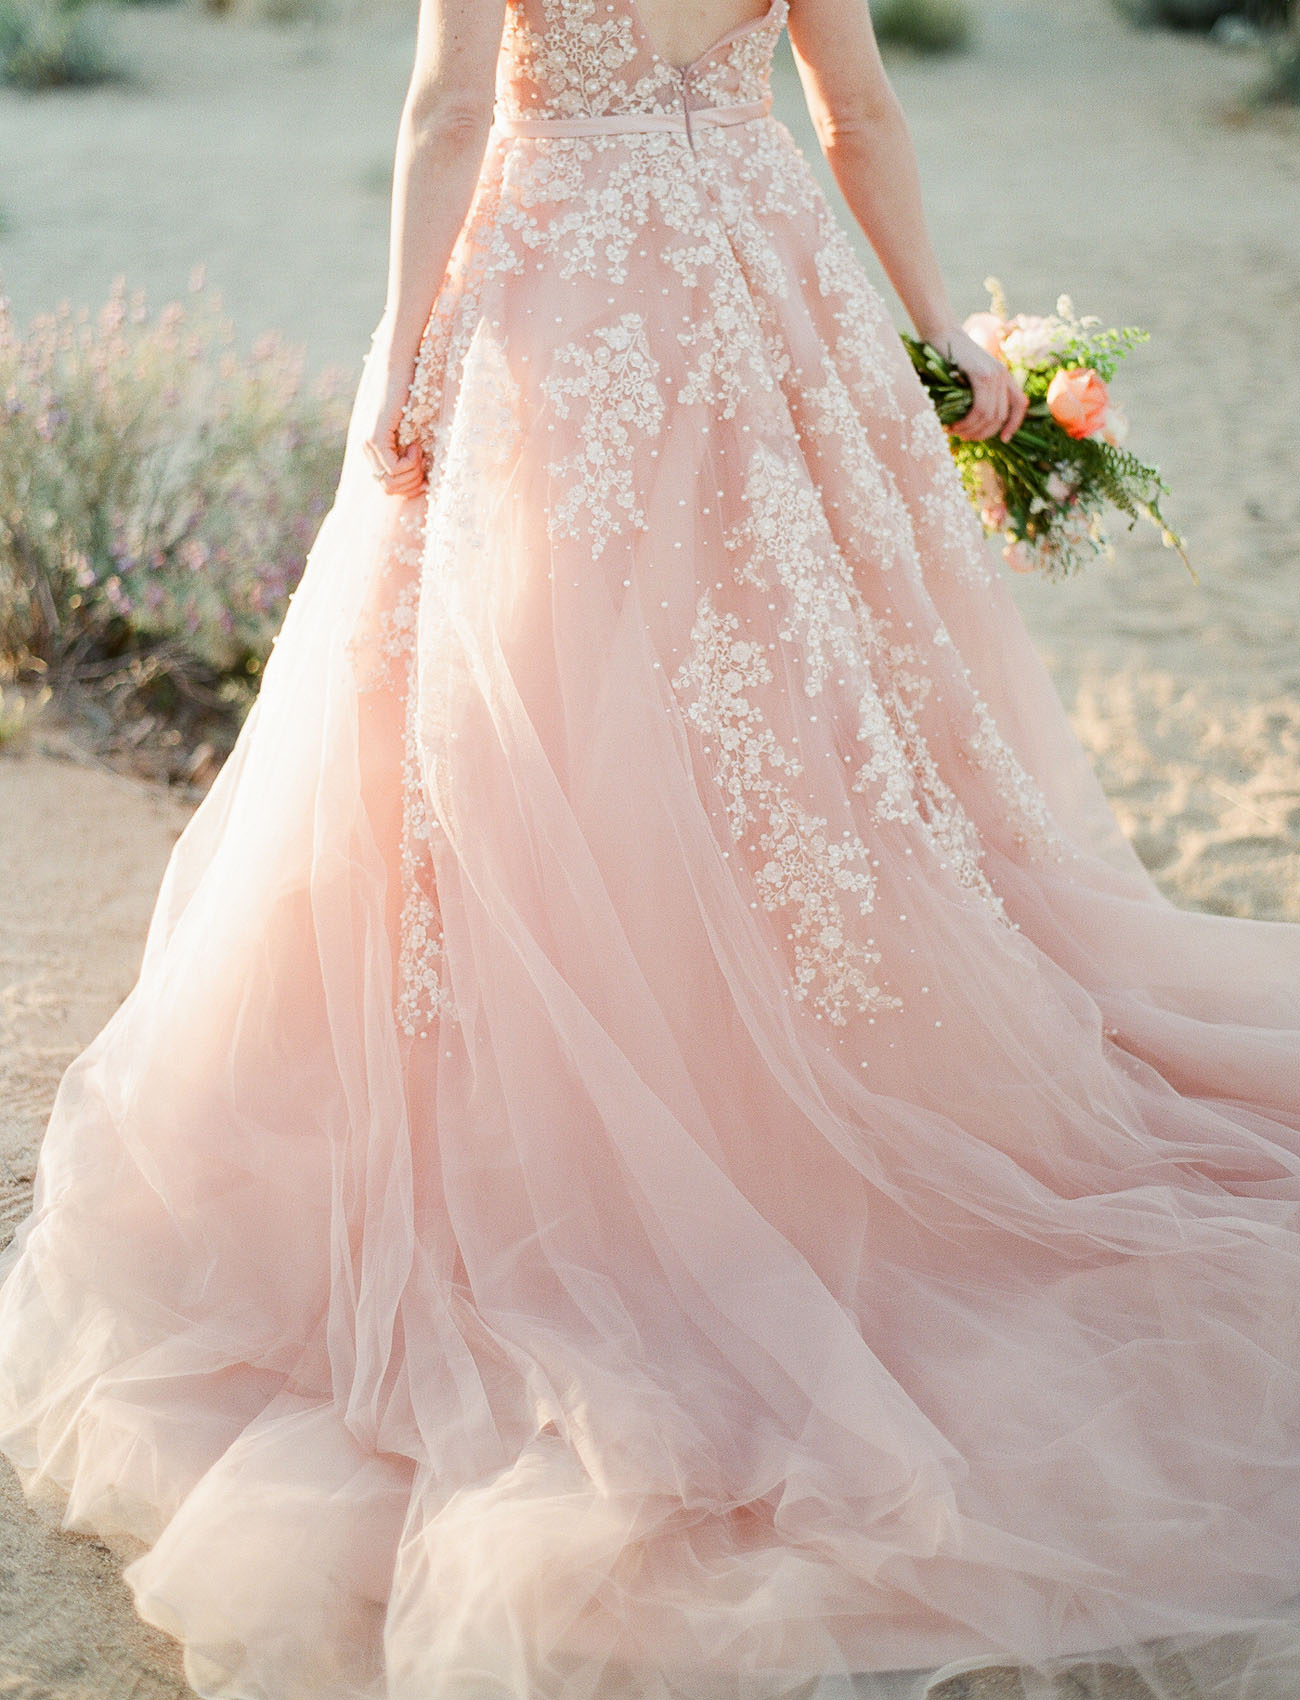 Our favorite wedding dresses from 2016 green wedding shoes for Pink wedding dresses pictures